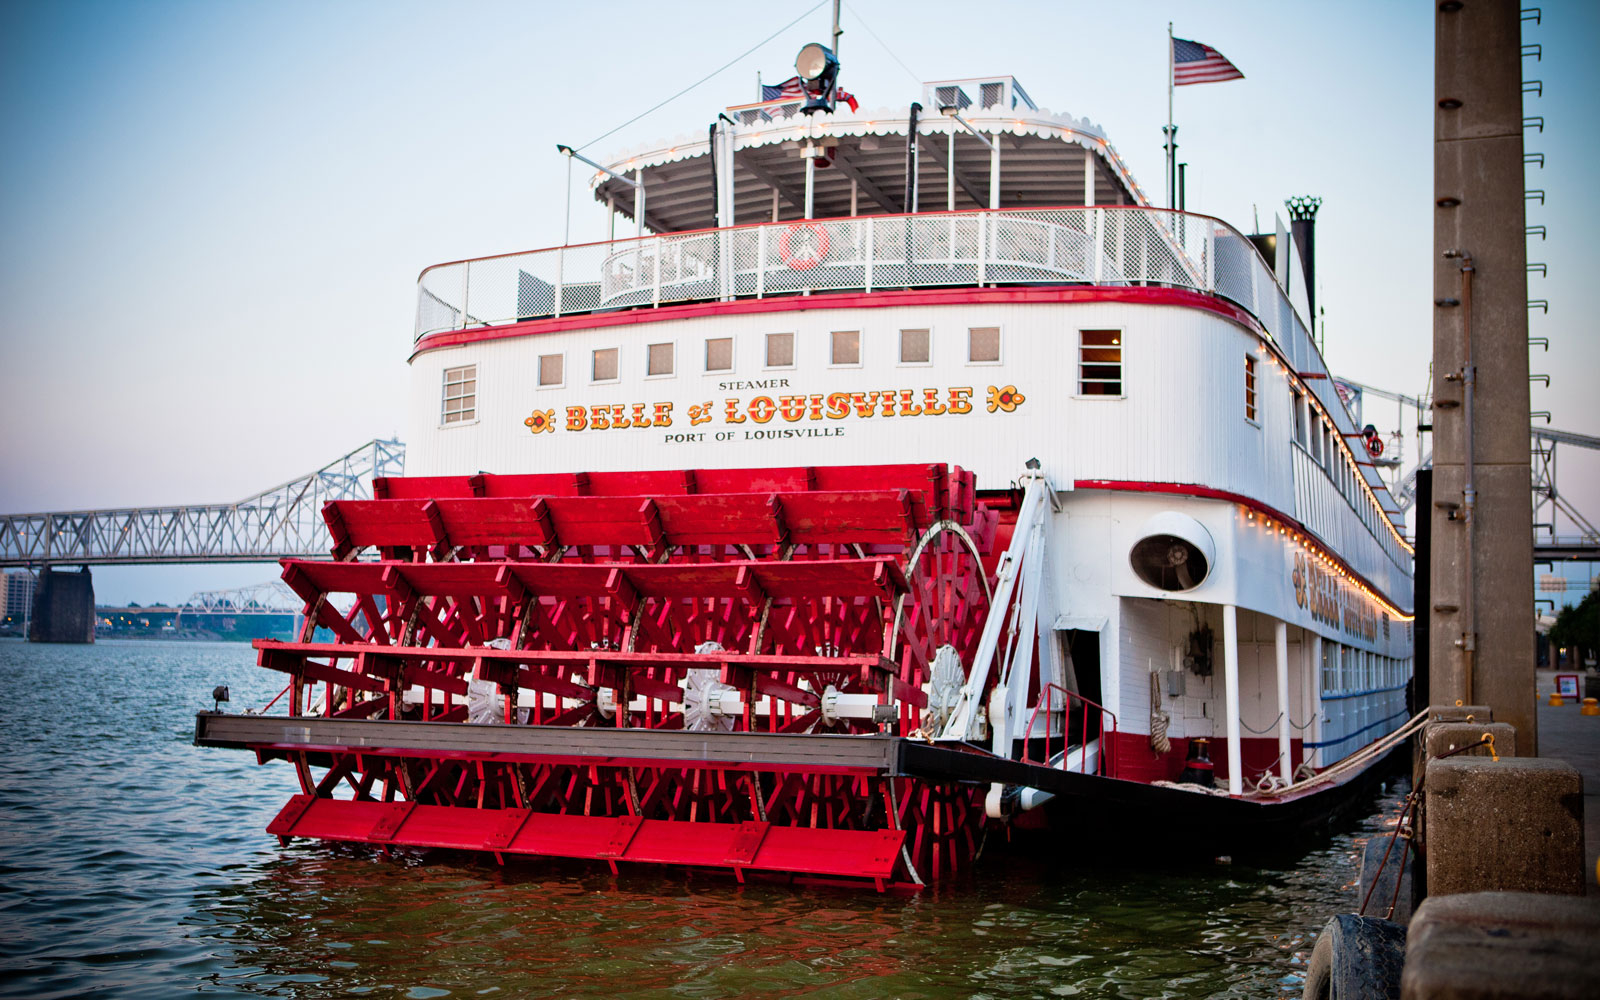 Belle of Louisville Steamboat in Louisville, KY